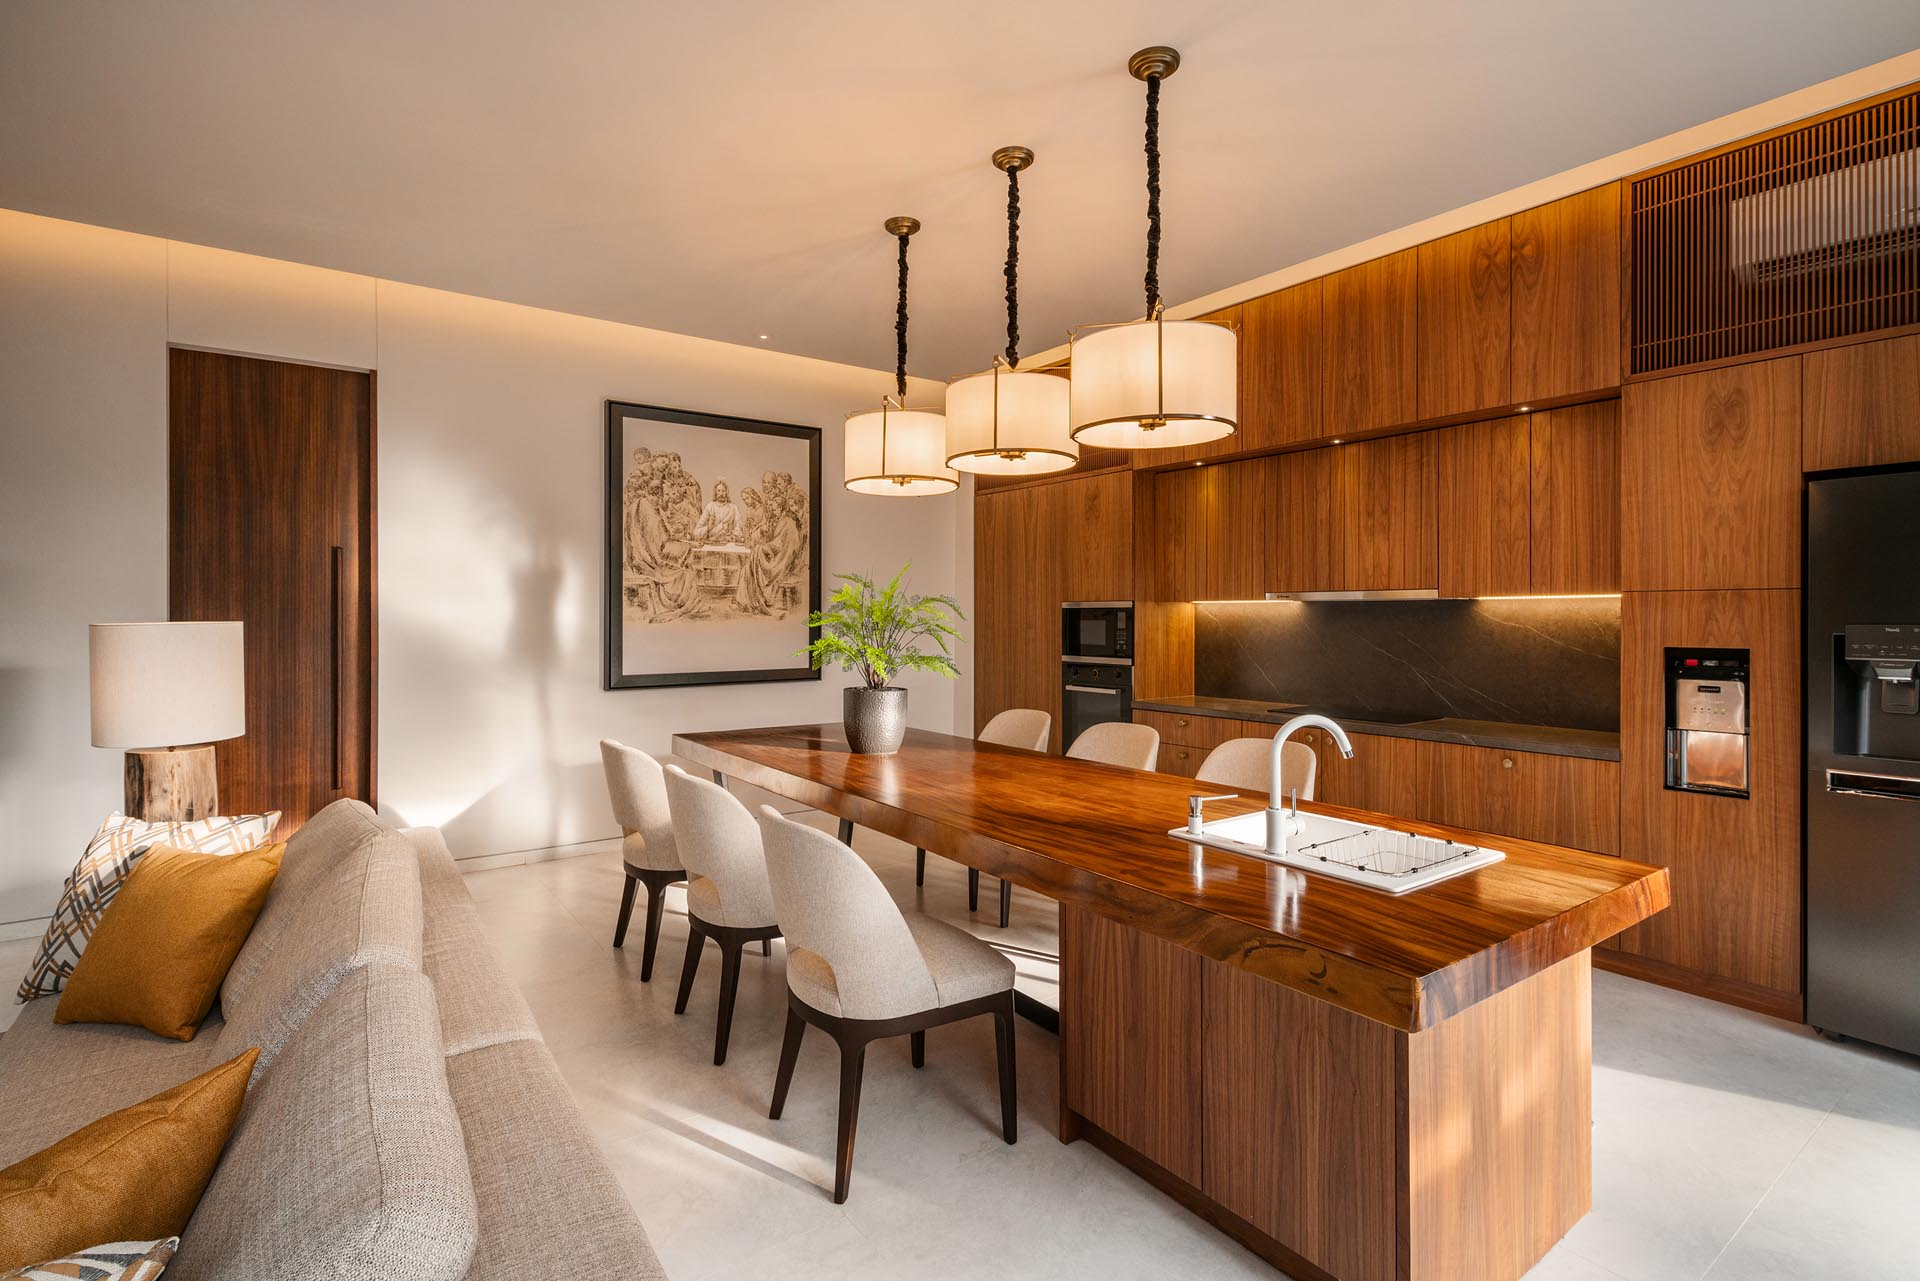 The living room shares the large open plan room with the wood kitchen and dining area, which is incorporated into the design of the kitchen island.